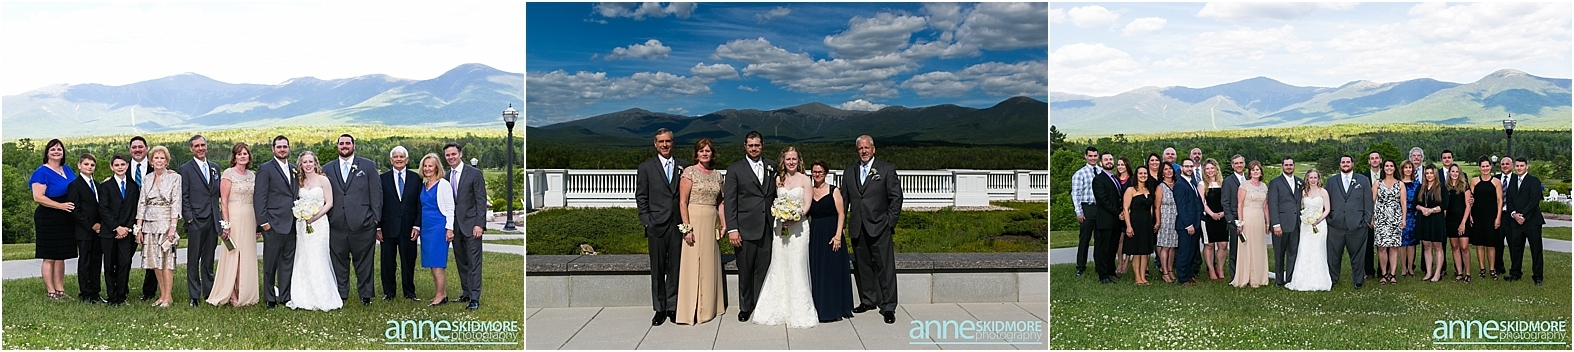 Mount_Washington_Hotel_Wedding_0035